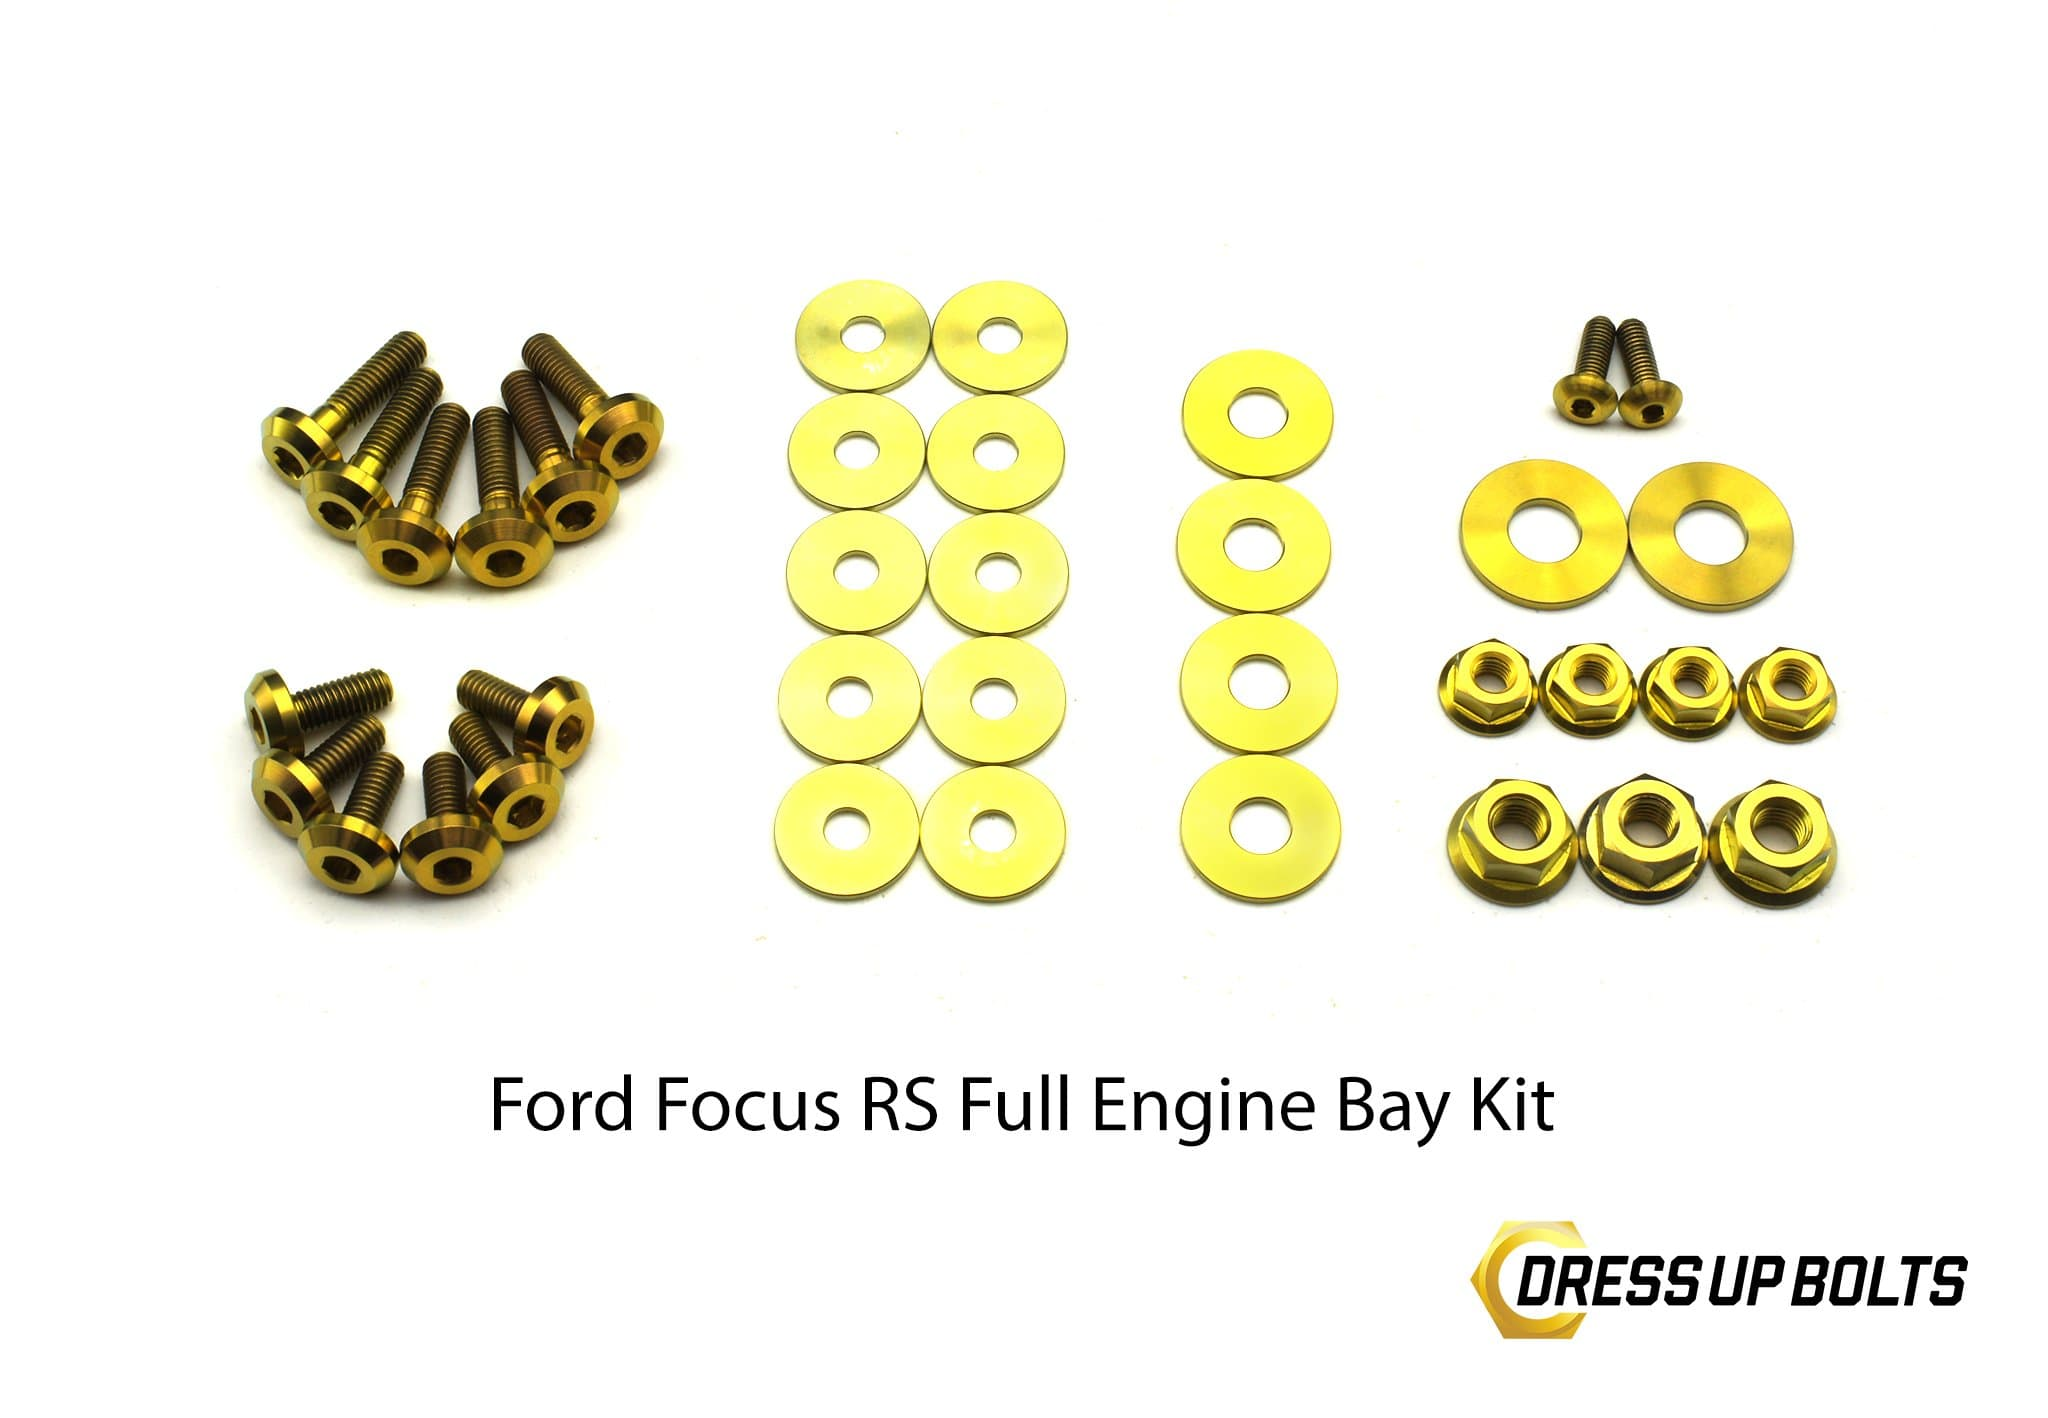 Ford Focus RS (2016-2018) Titanium Dress Up Bolt Engine Bay Kit - DressUpBolts.com